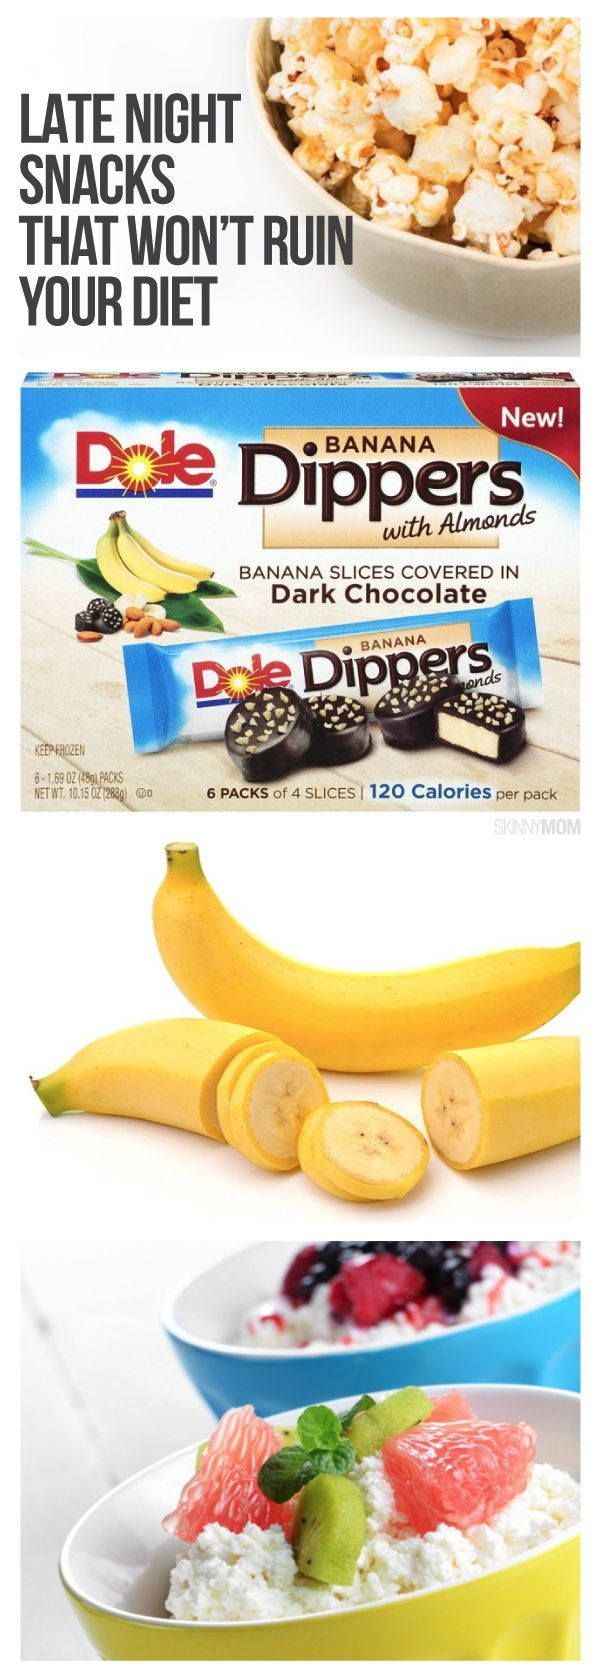 nike free shoes cheap Late night snacking doesn't have to be such a sin with these snacks!